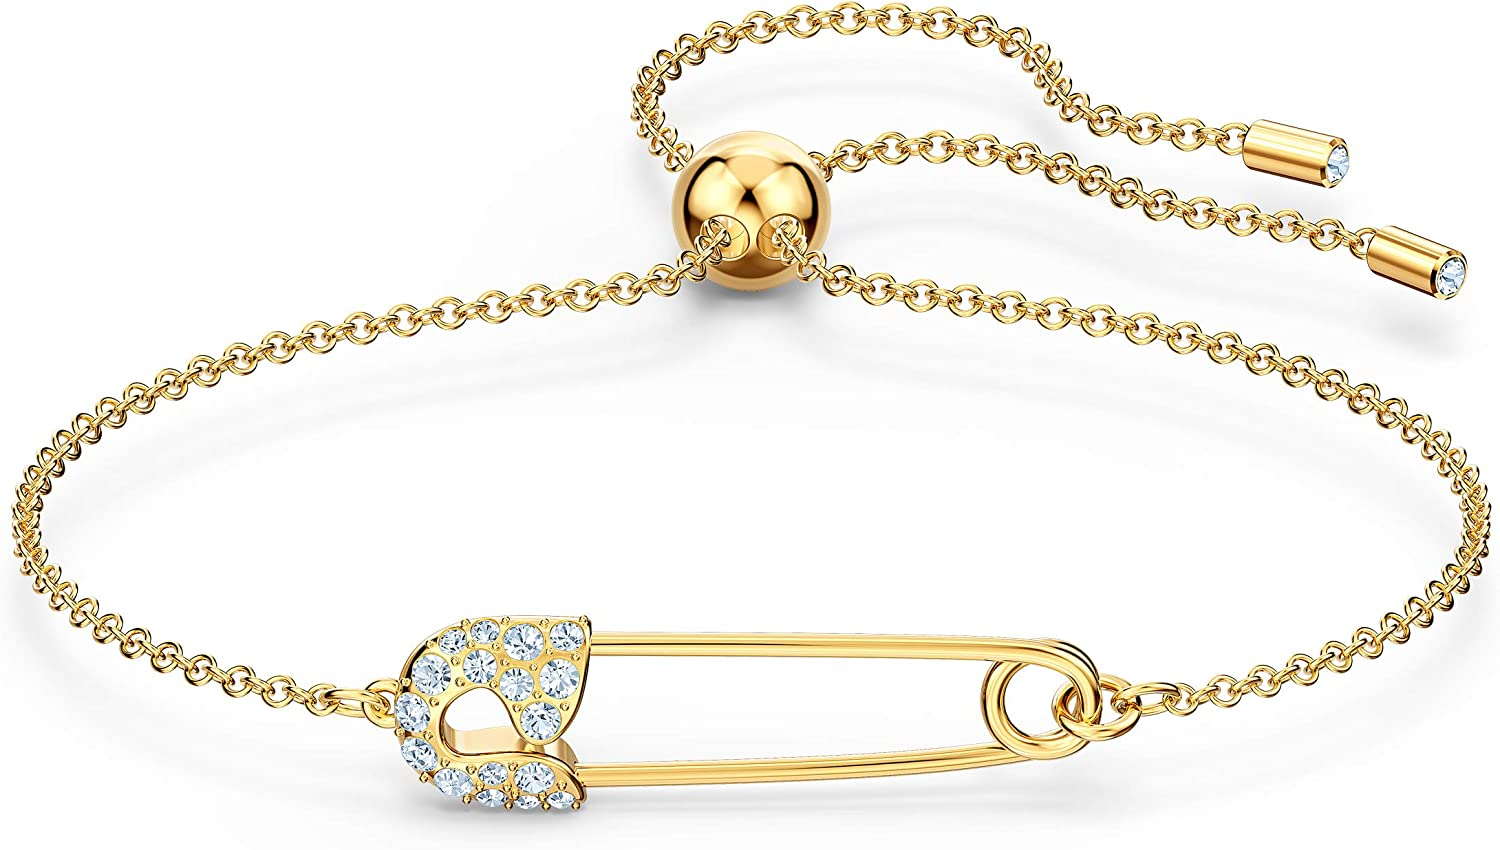 Swarovski So Cool Women's Pin Bracelet with Clear Swarovski Crystals on a  Gold-Tone Setting